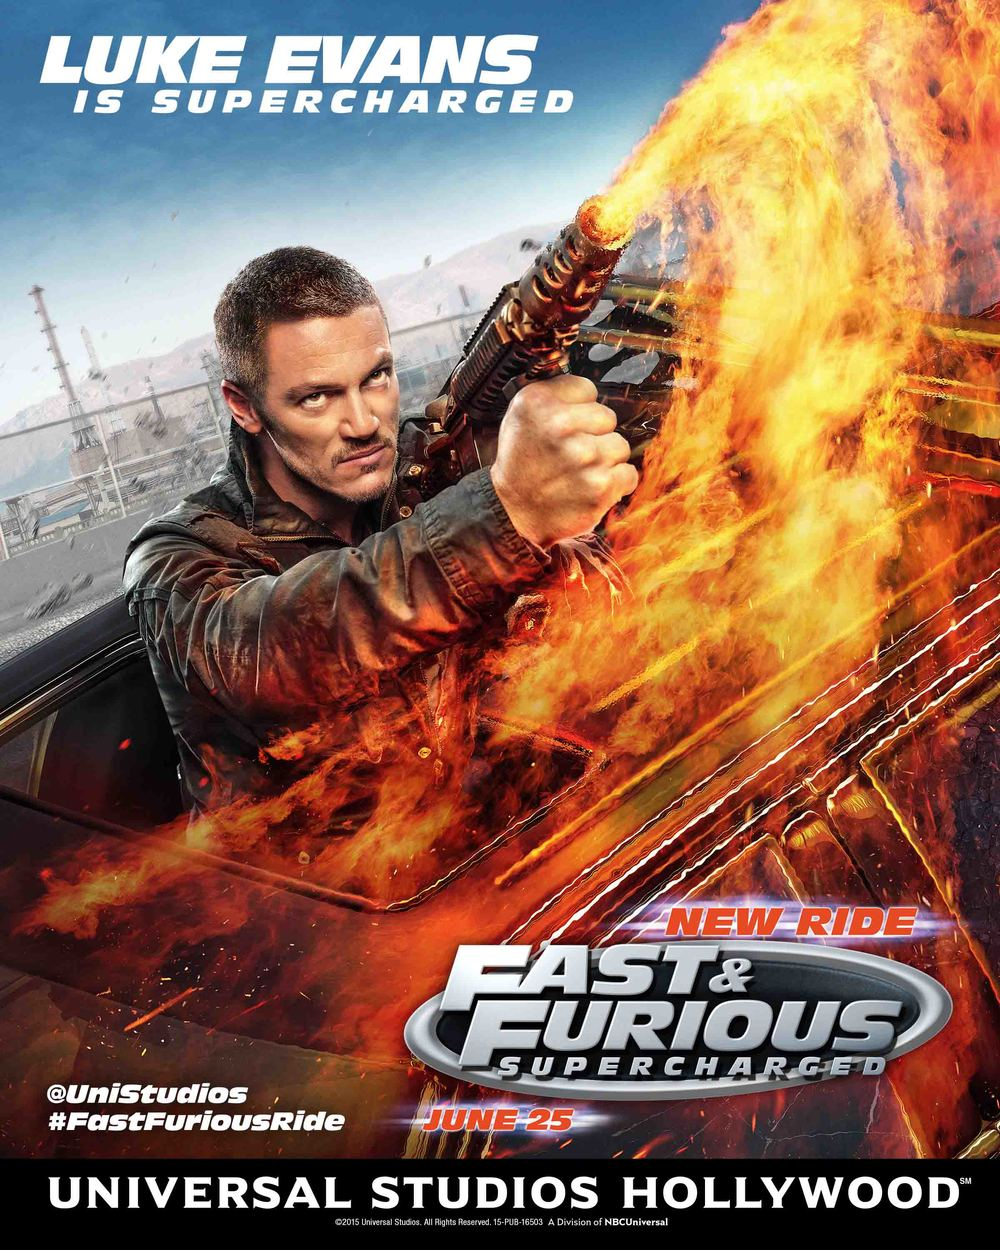 Fast Furious-Supercharged Luke Evans poster.jpg